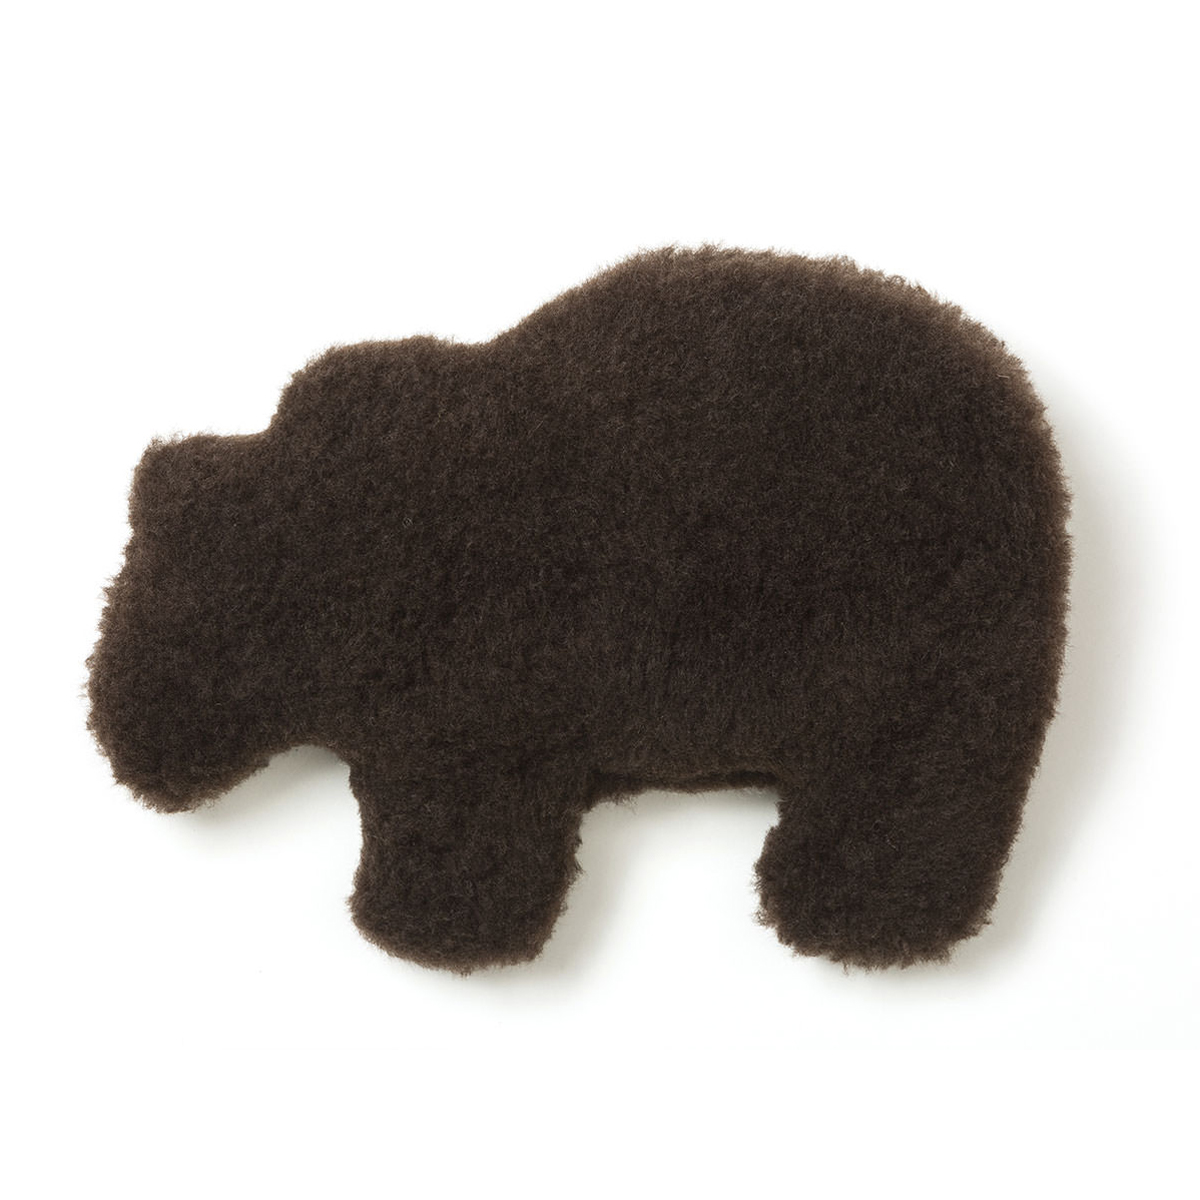 Gallatin Grizzly Dog Toy by West Paw - Boulder